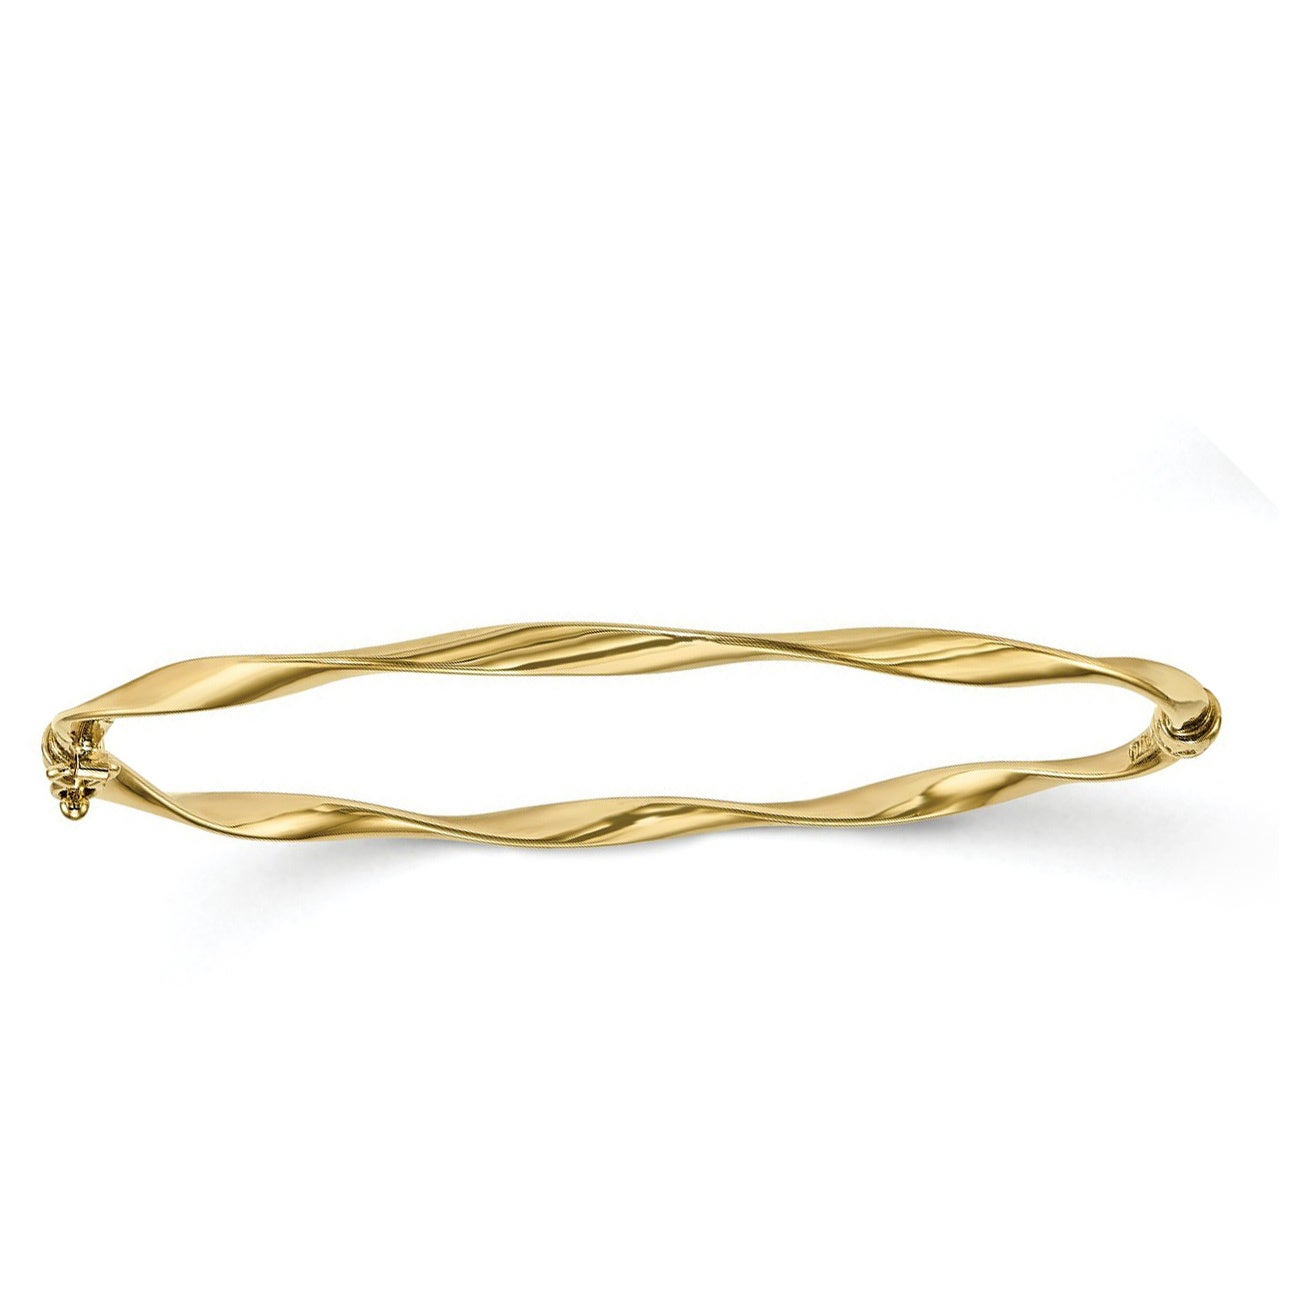 overstock tricolor shipping product karat inch gold bracelets jewelry today strand bangles bracelet braided herringbone watches bangle fremada free